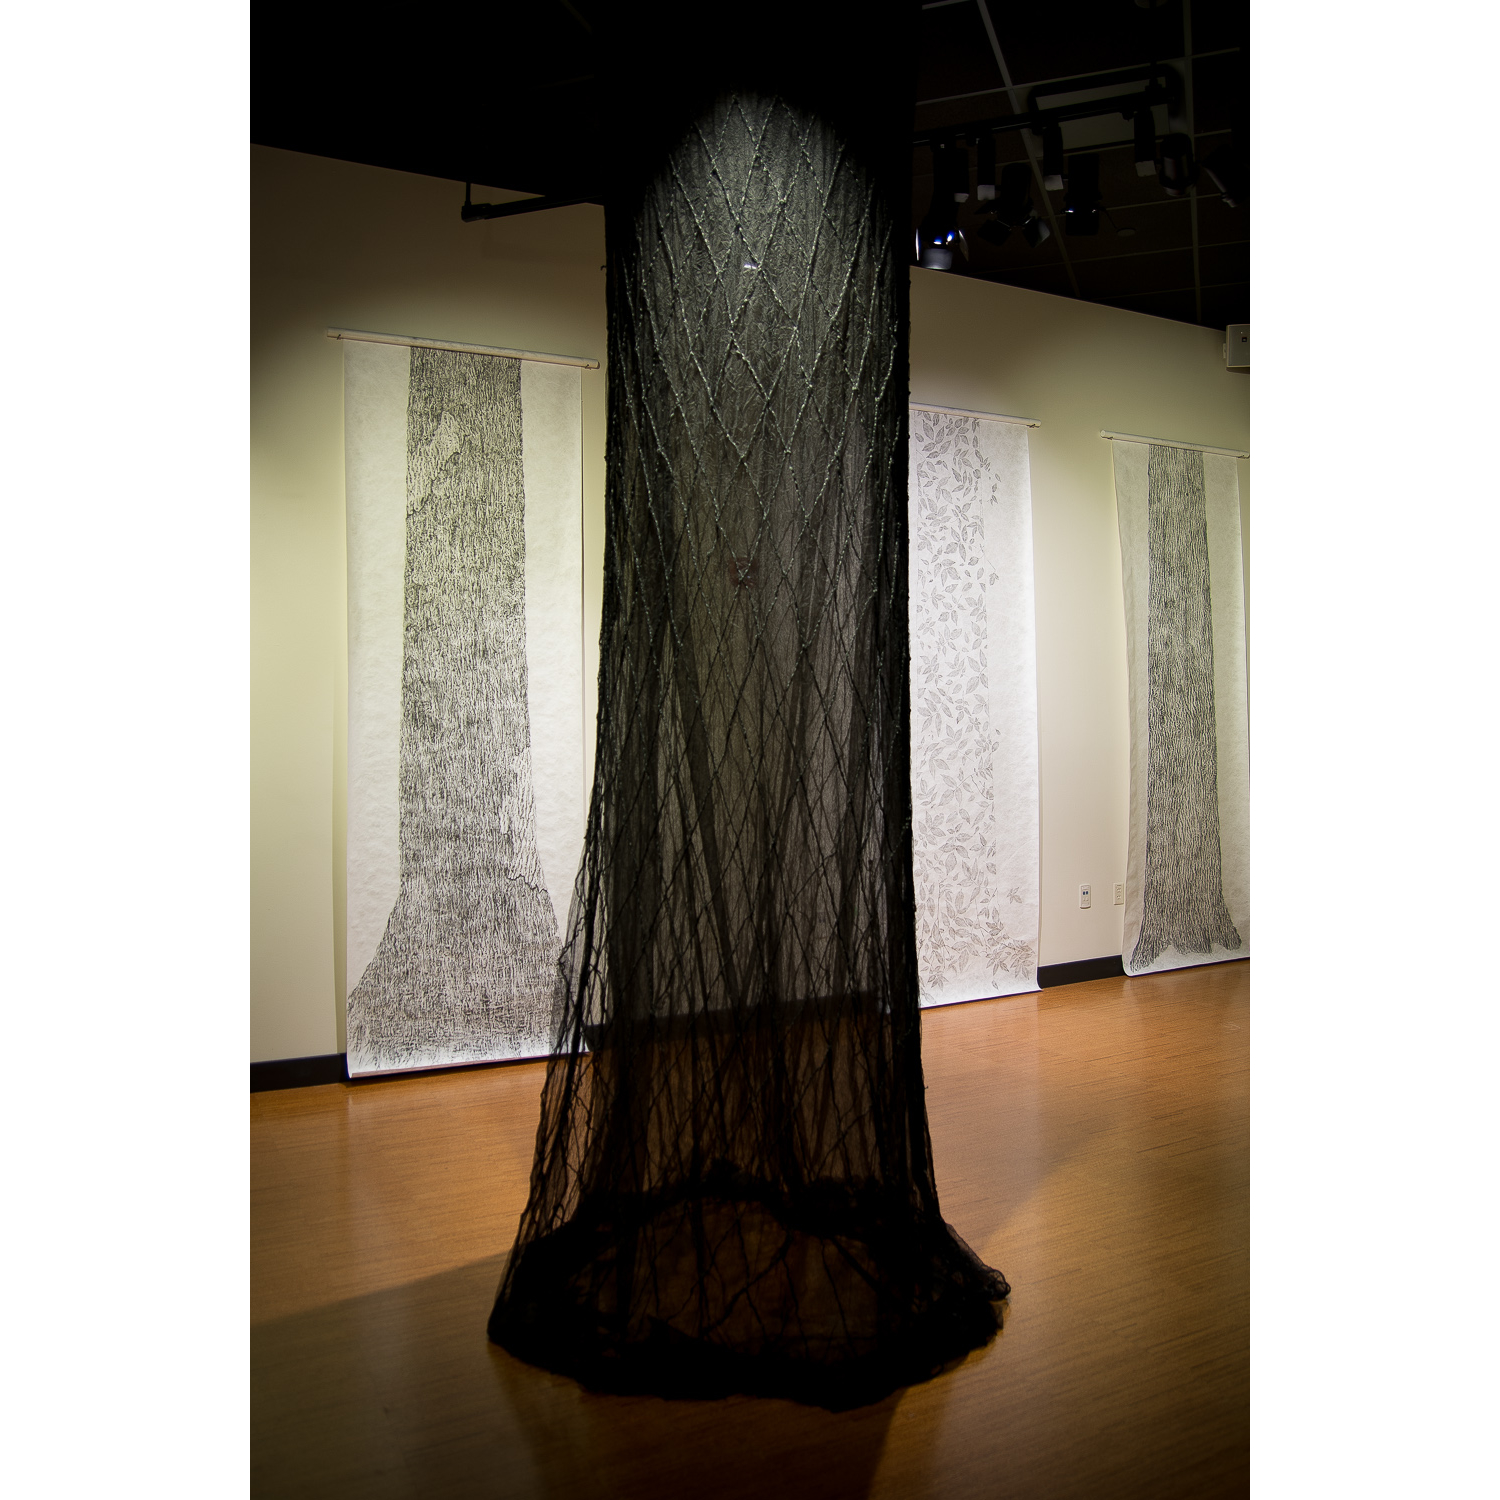 Emeralds-2-Ashes_Rosing_2018_TruaxGallery_MadisonCollege (8).JPG